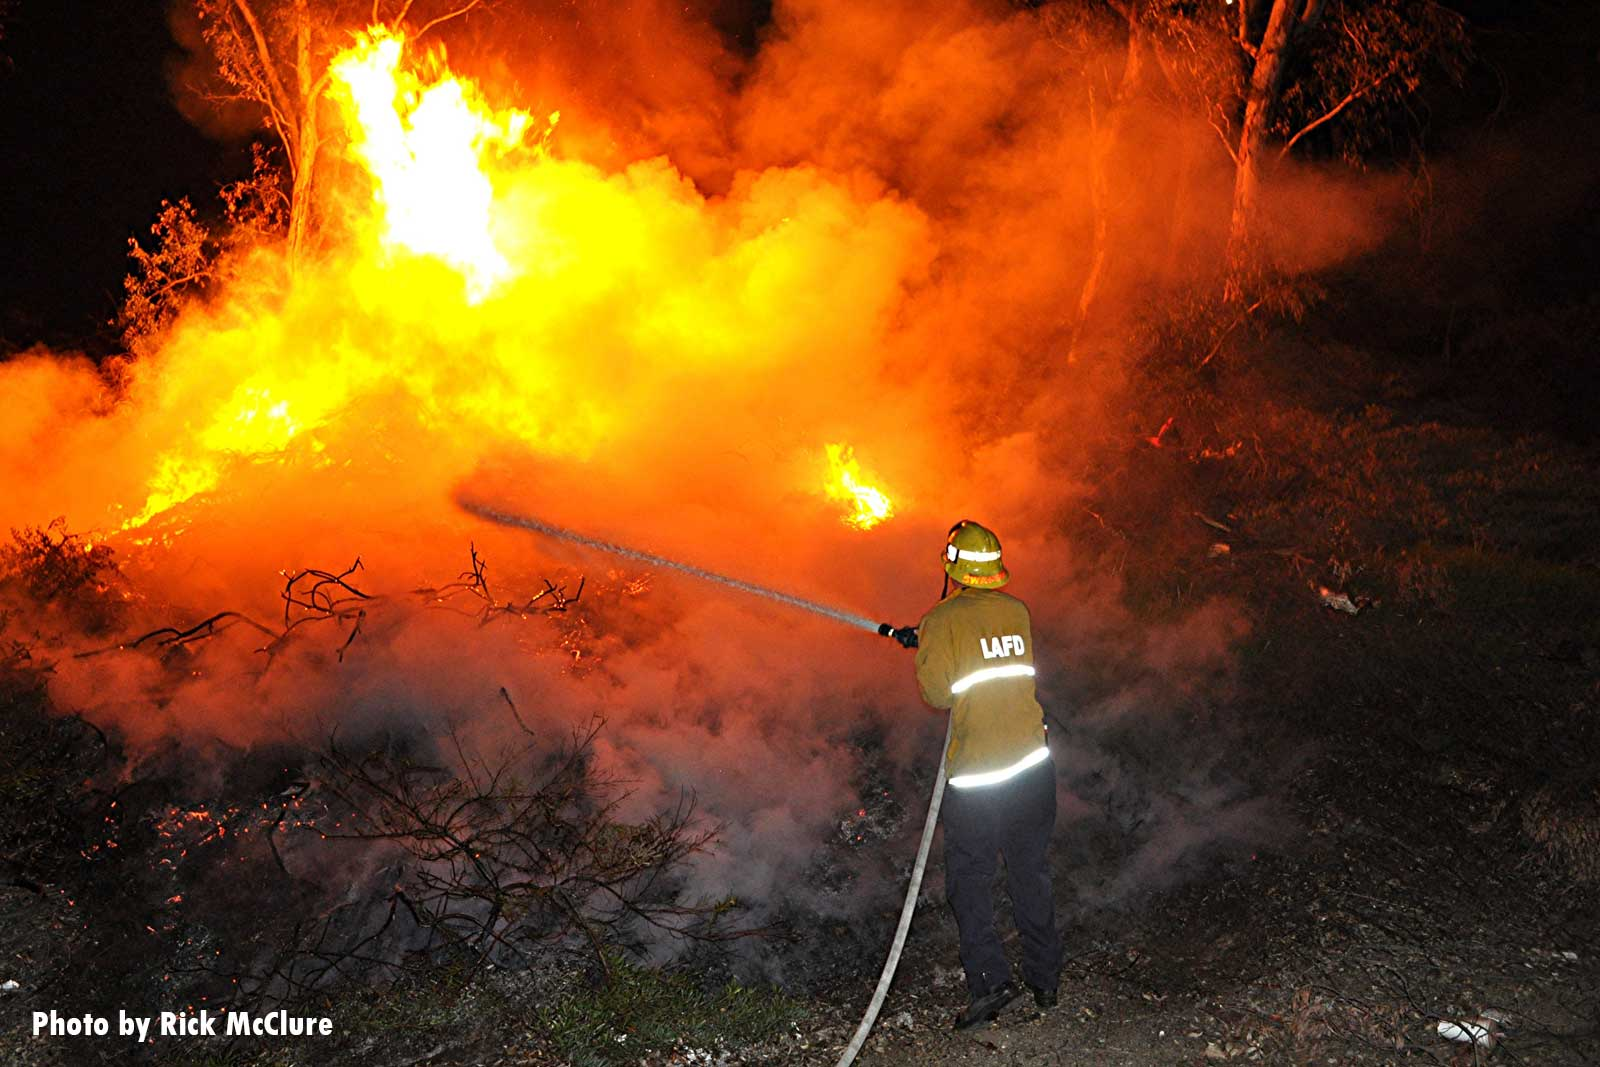 A firefighter aims a hose stream at burning brush in California